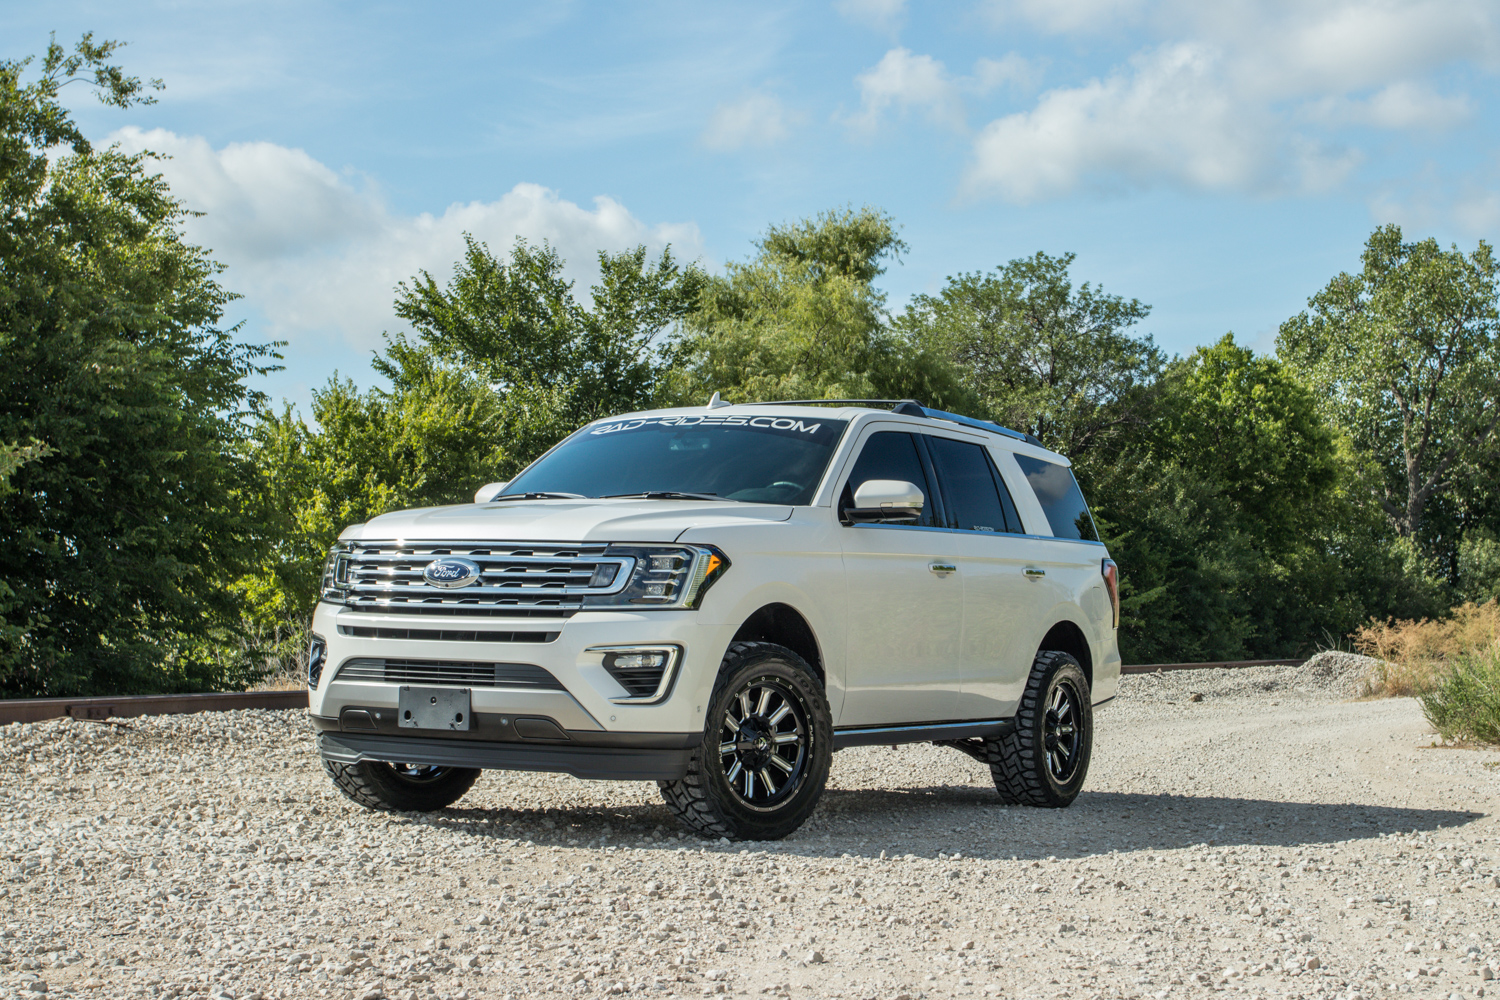 2018 Ford Expedition Limited Lift Level Kit Sold Rad Rides